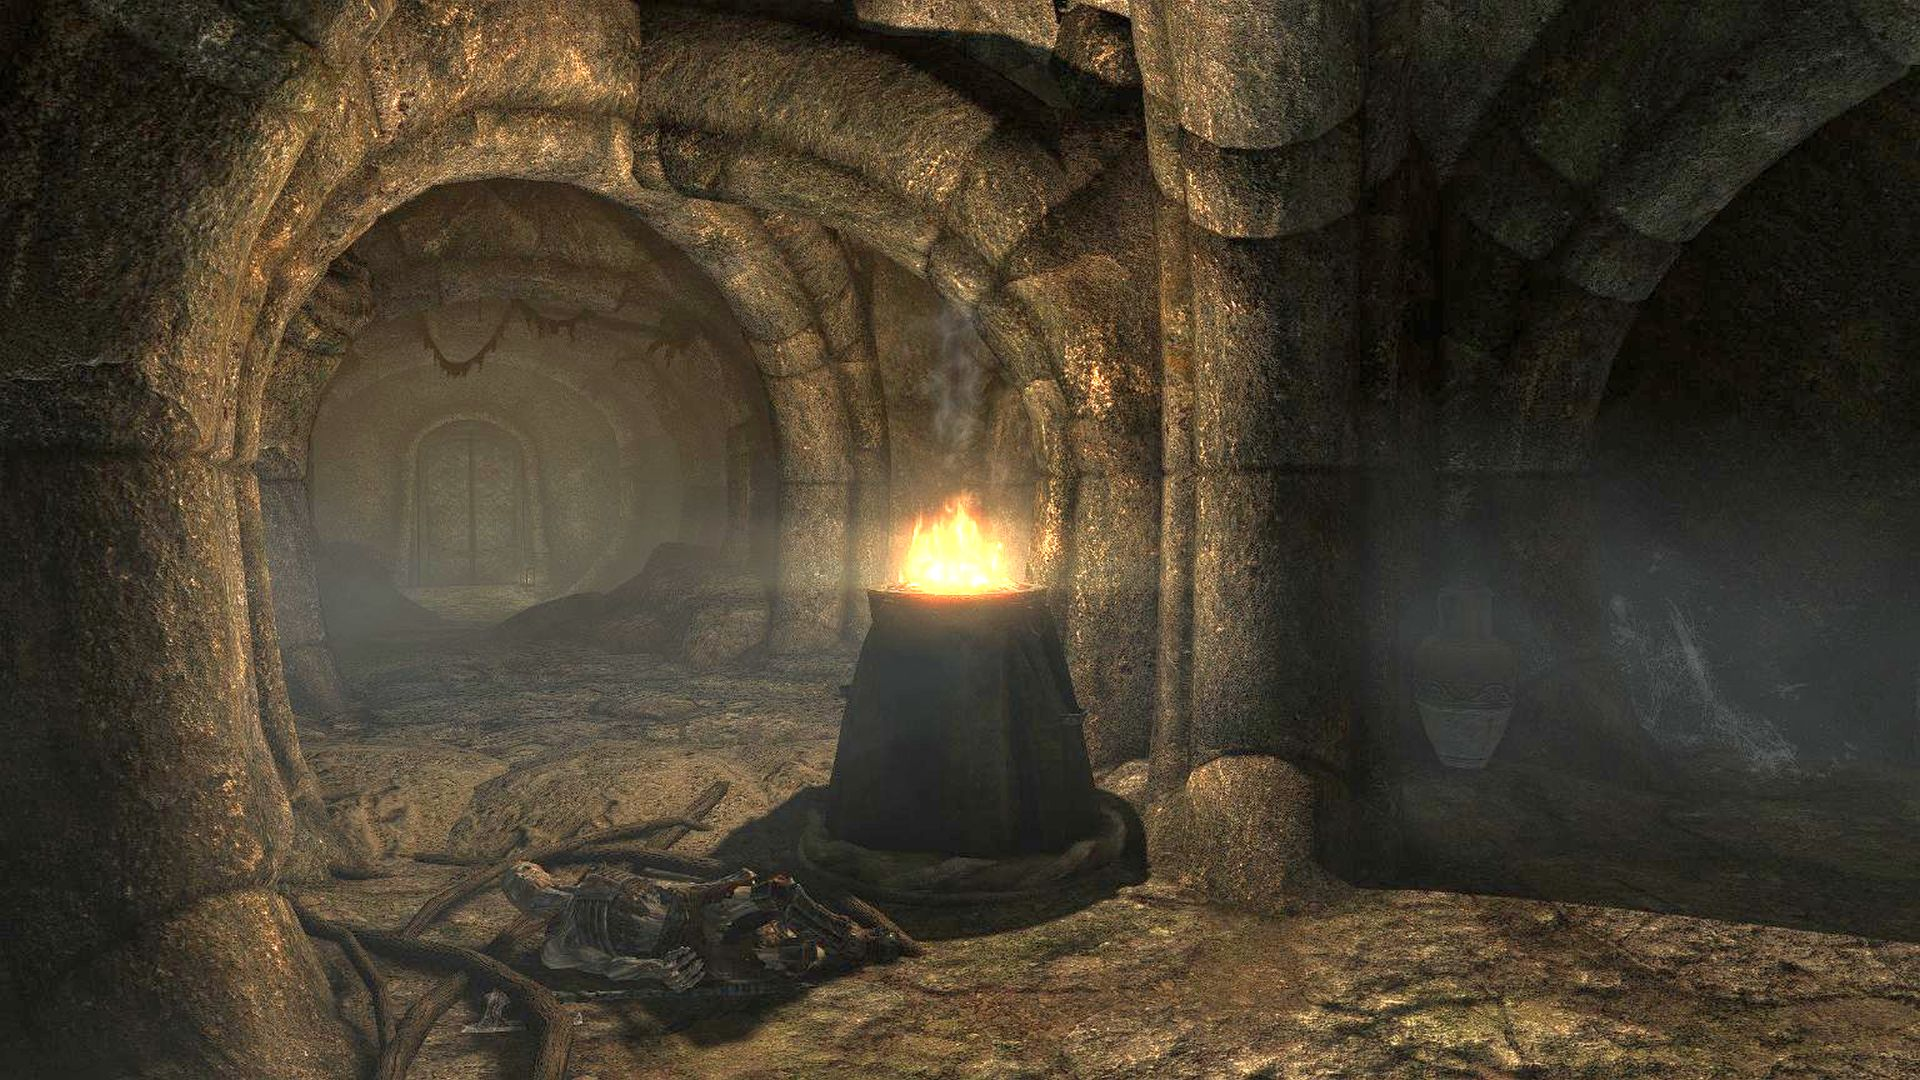 A Skyrim modder is enhancing its dungeons and doubling their sizes